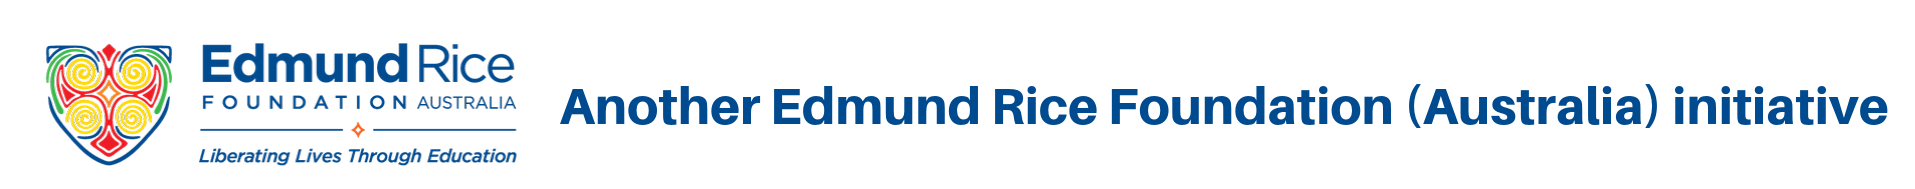 Another Edmund Rice Foundation (Australia) initiative